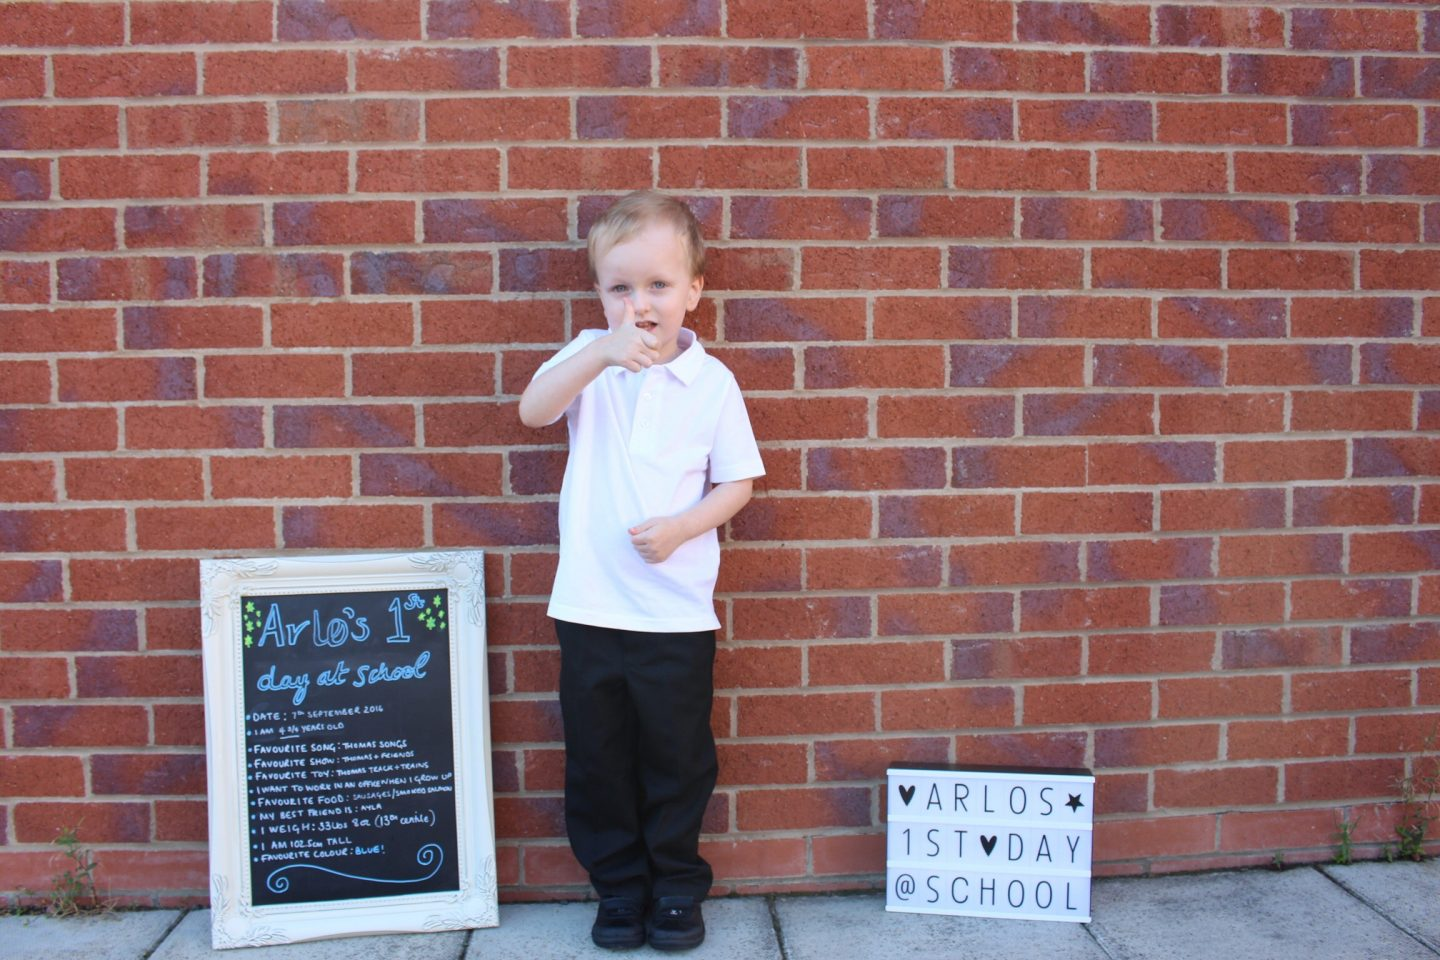 A little boy on his first day of school next to a sign that says 'Arlo's first day of school'